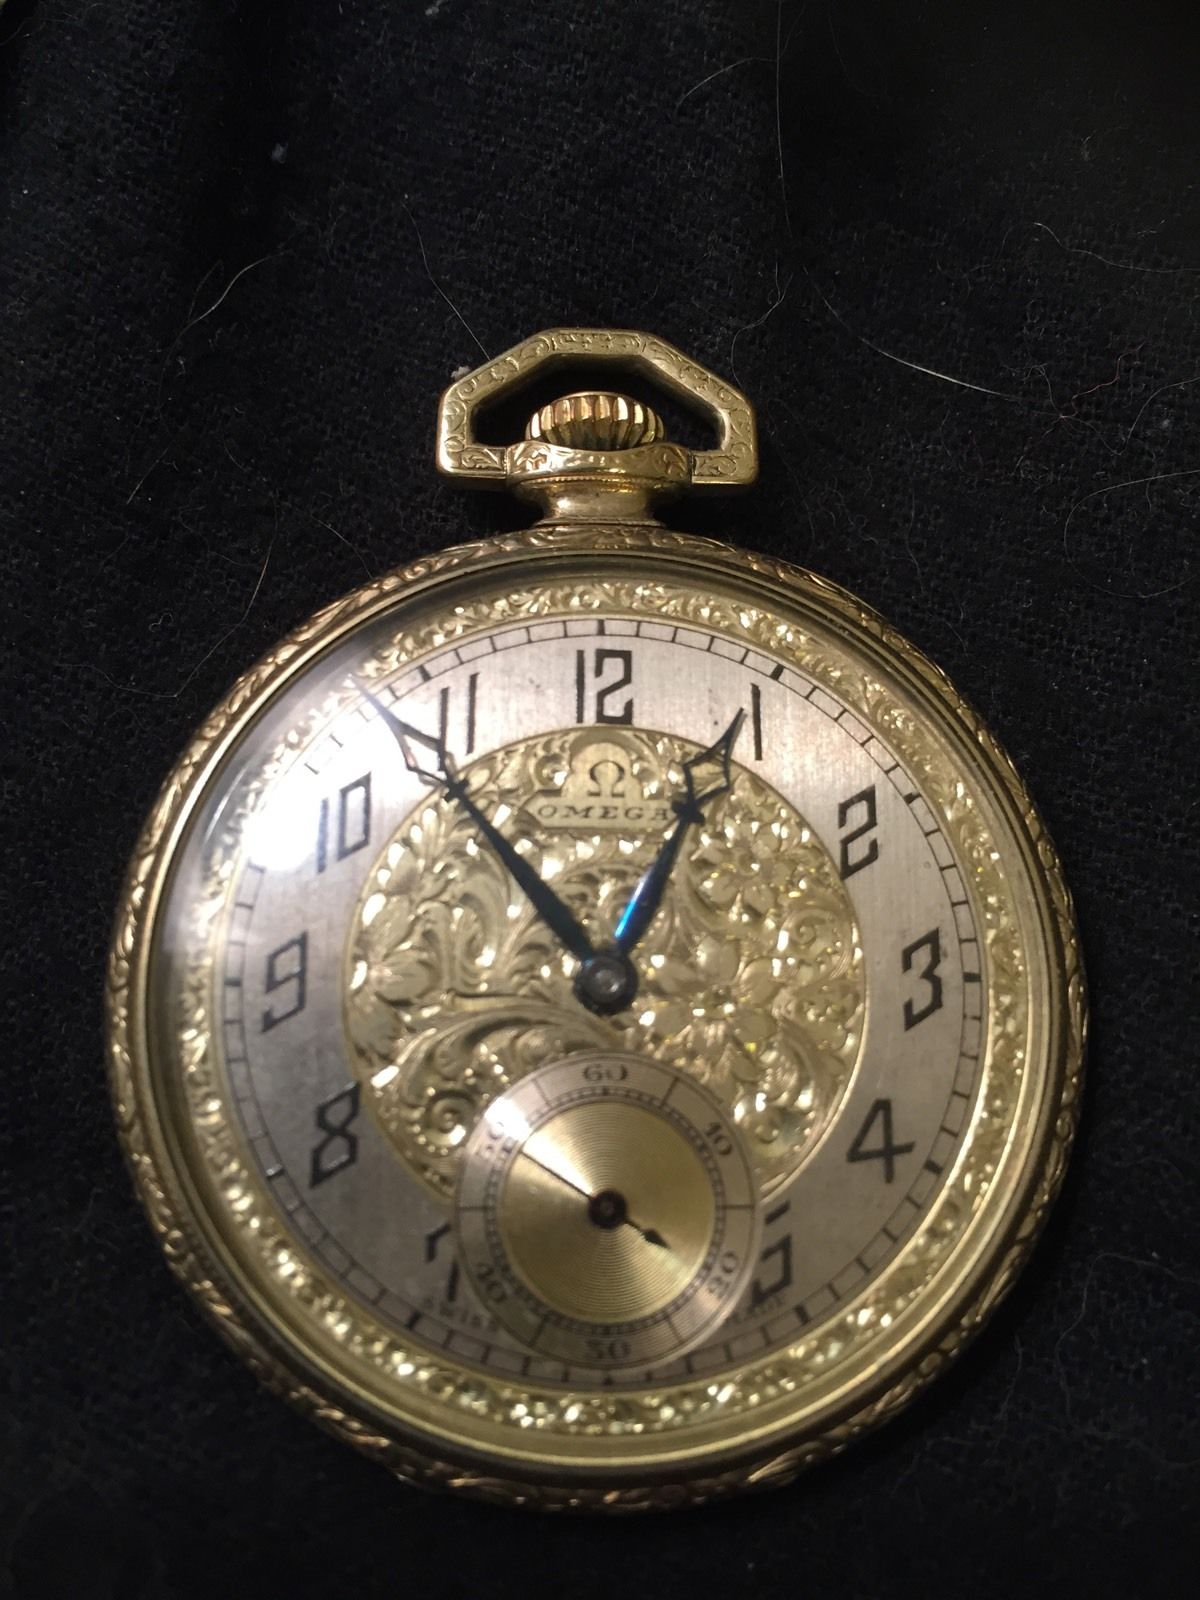 LOT 5  Omega Pocket Watch 17 Jewel  Price realized – US  147.47 (Approx.  £102) f4178ae46b